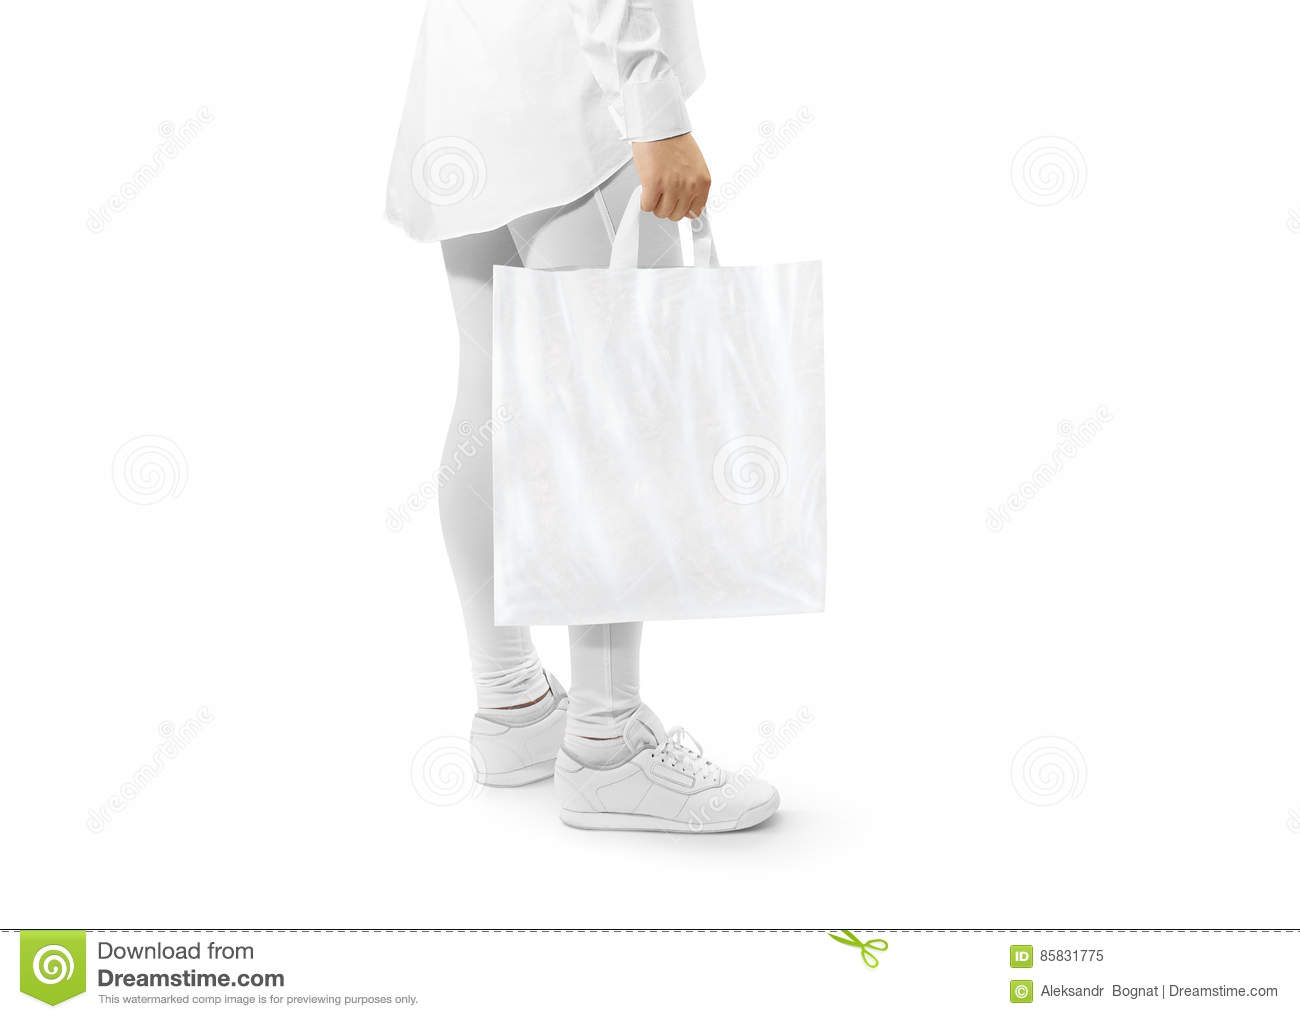 375b491f Blank white plastic bag mockup holding hand. Woman hold carrier sac mock up  with loop handles. Plain bagful branding template. Shopping carry package  in ...